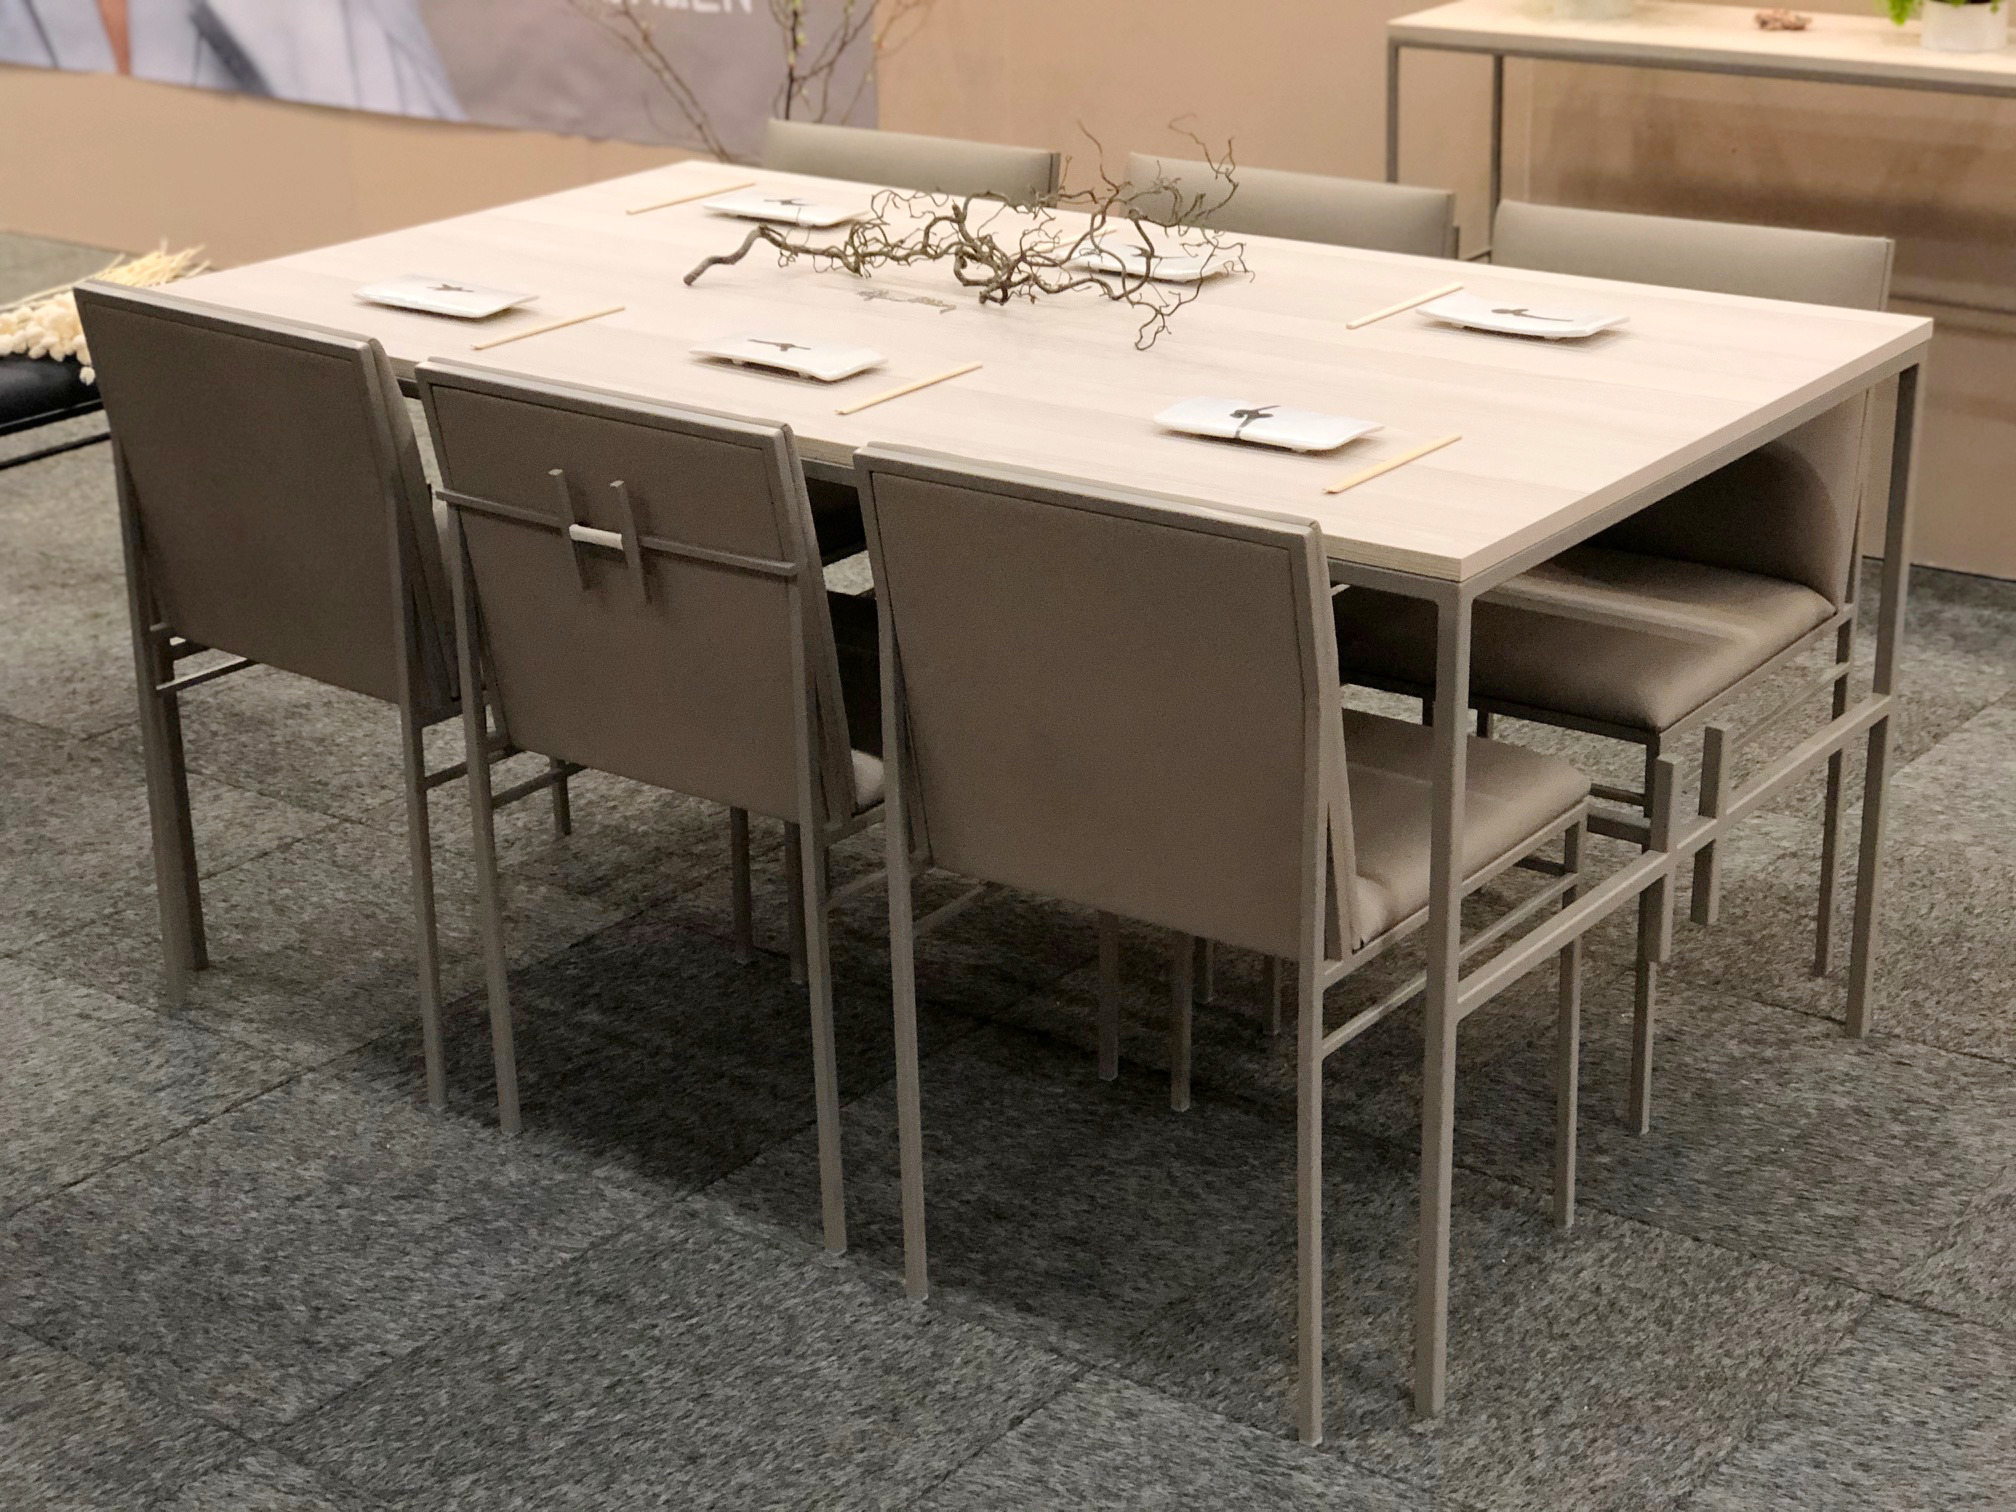 formex-2020-efva-attling-the-högdalen-by-crea-table-chairs